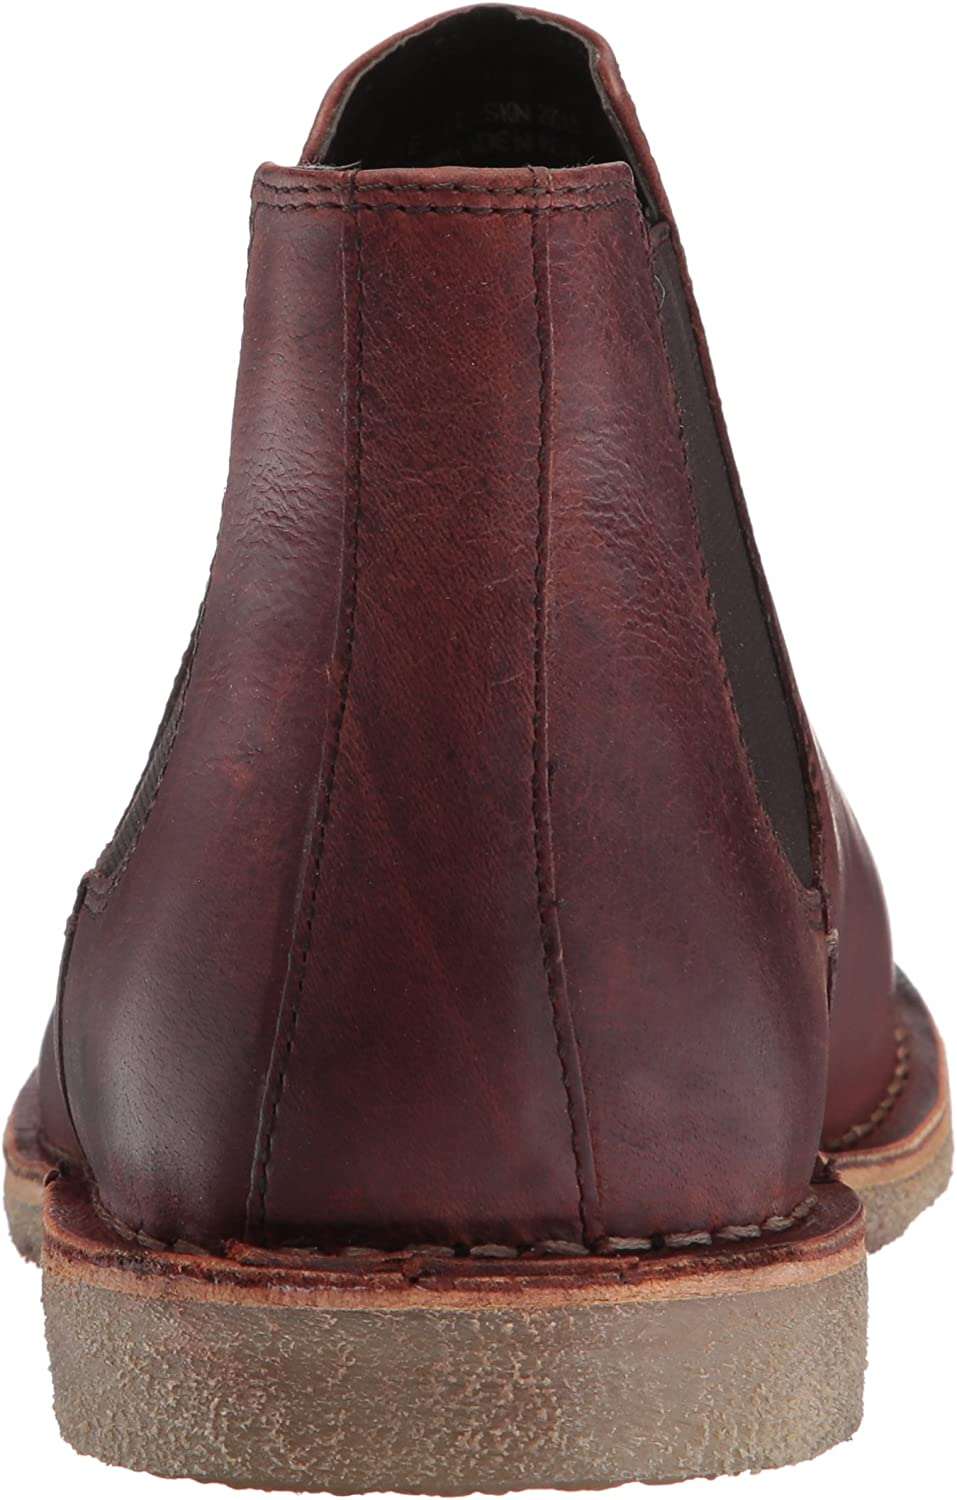 Kenneth Cole REACTION Mens Design 20015 Chelsea Boot